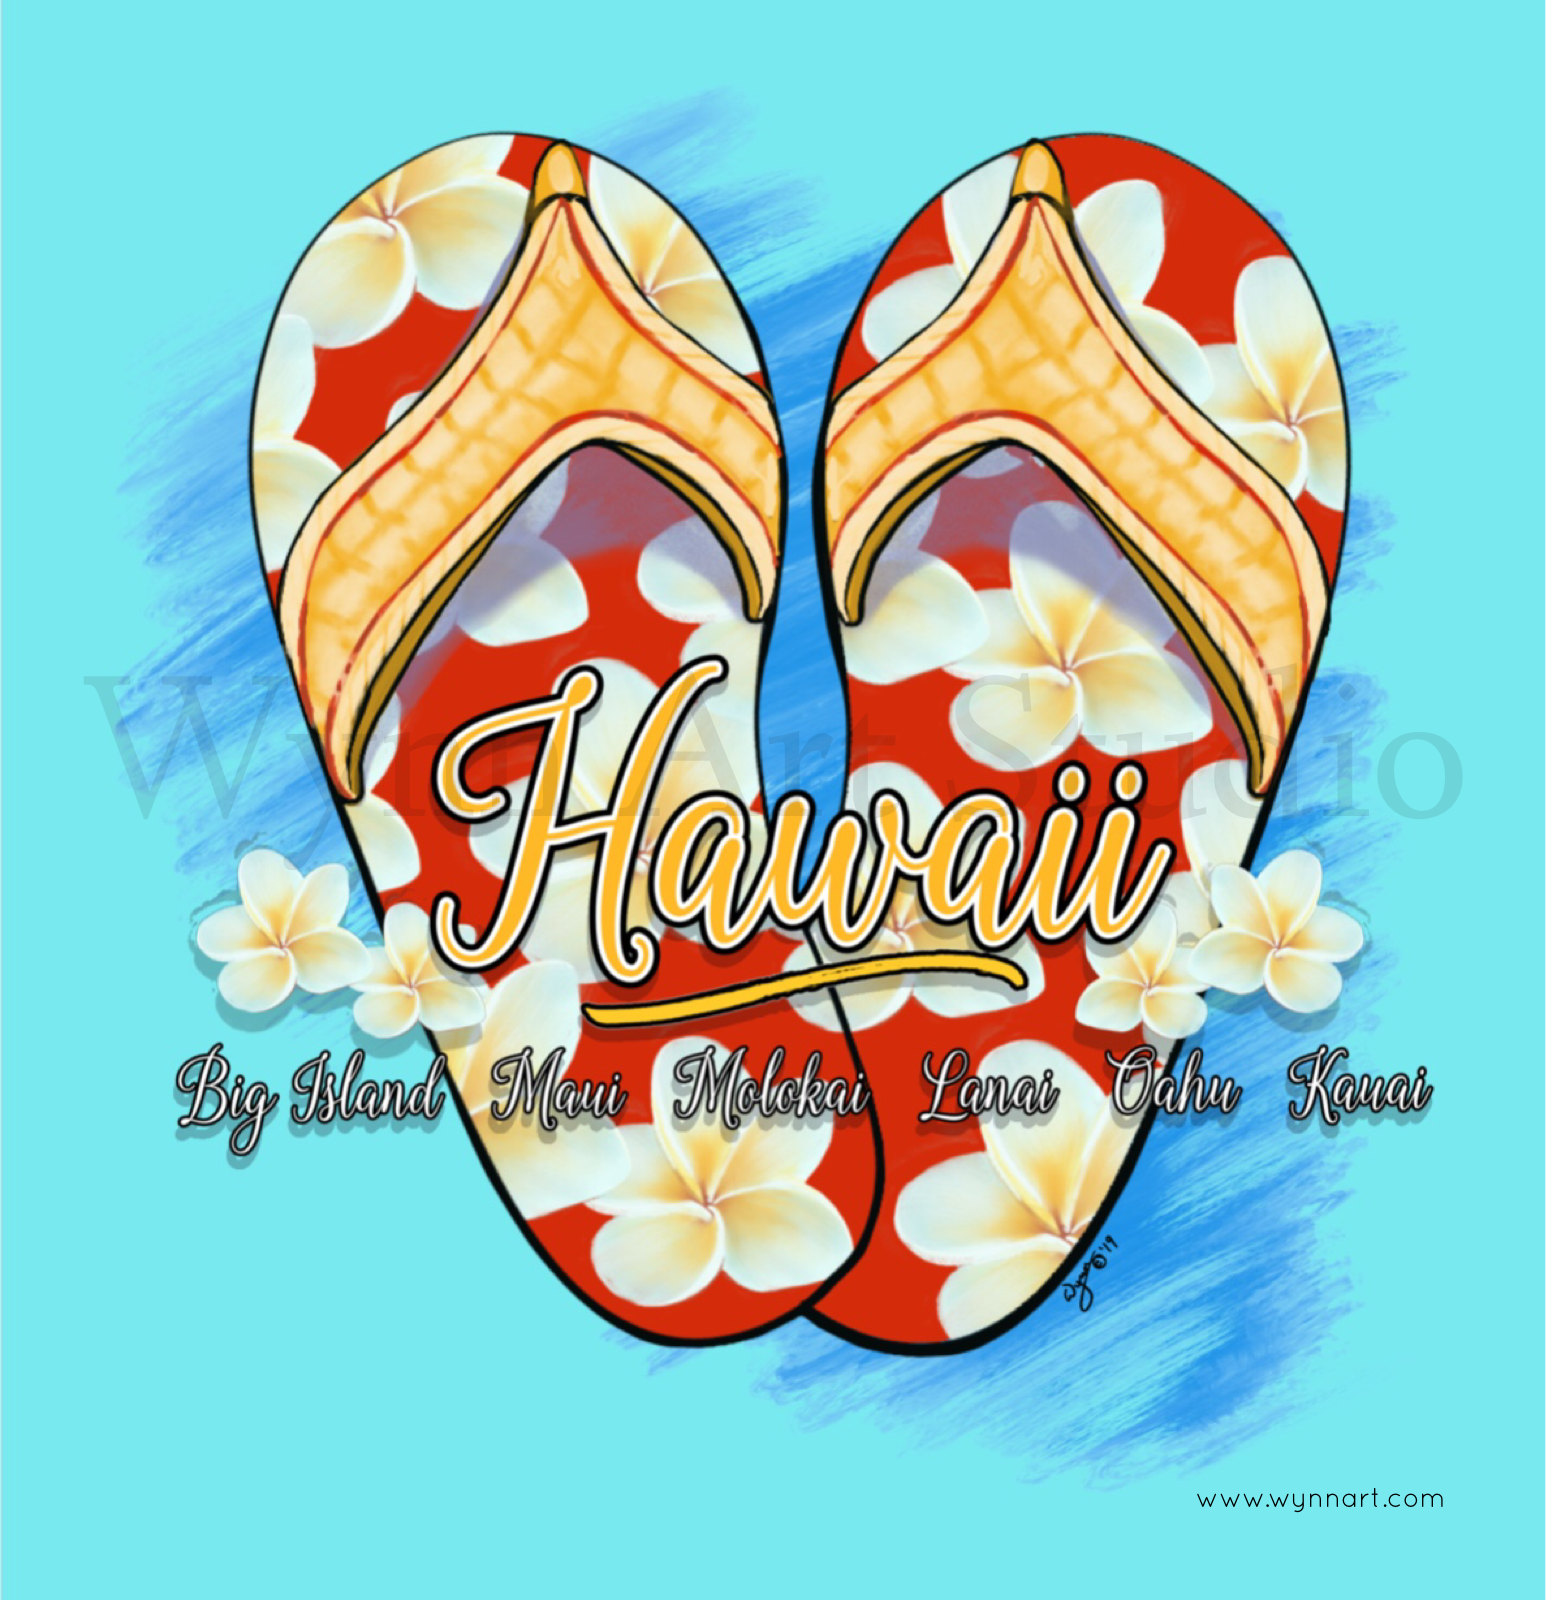 Hawaiian Style Slippers  Now available on Threadless.